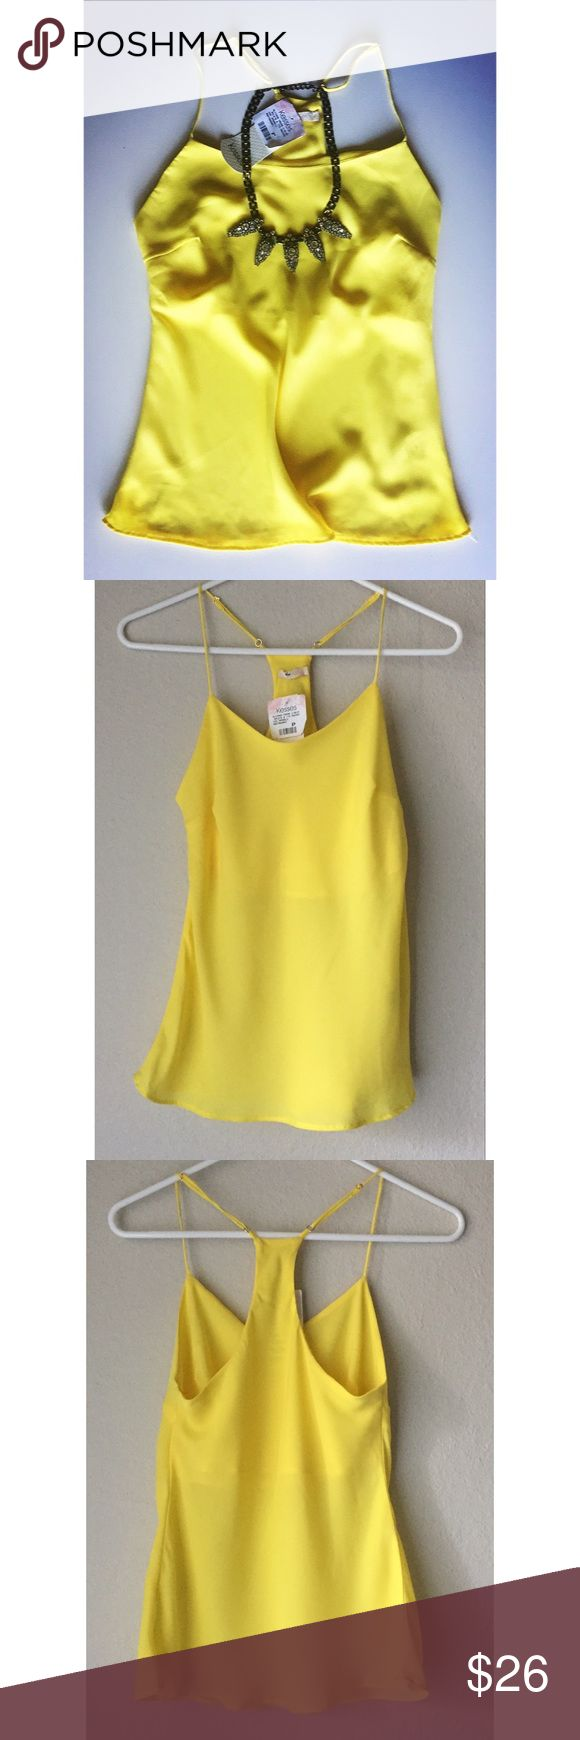 Kesses Yellow Cami Beautiful yellow camisole. Lining on bust area. Brazilian brand. New. Kesses Tops Camisoles